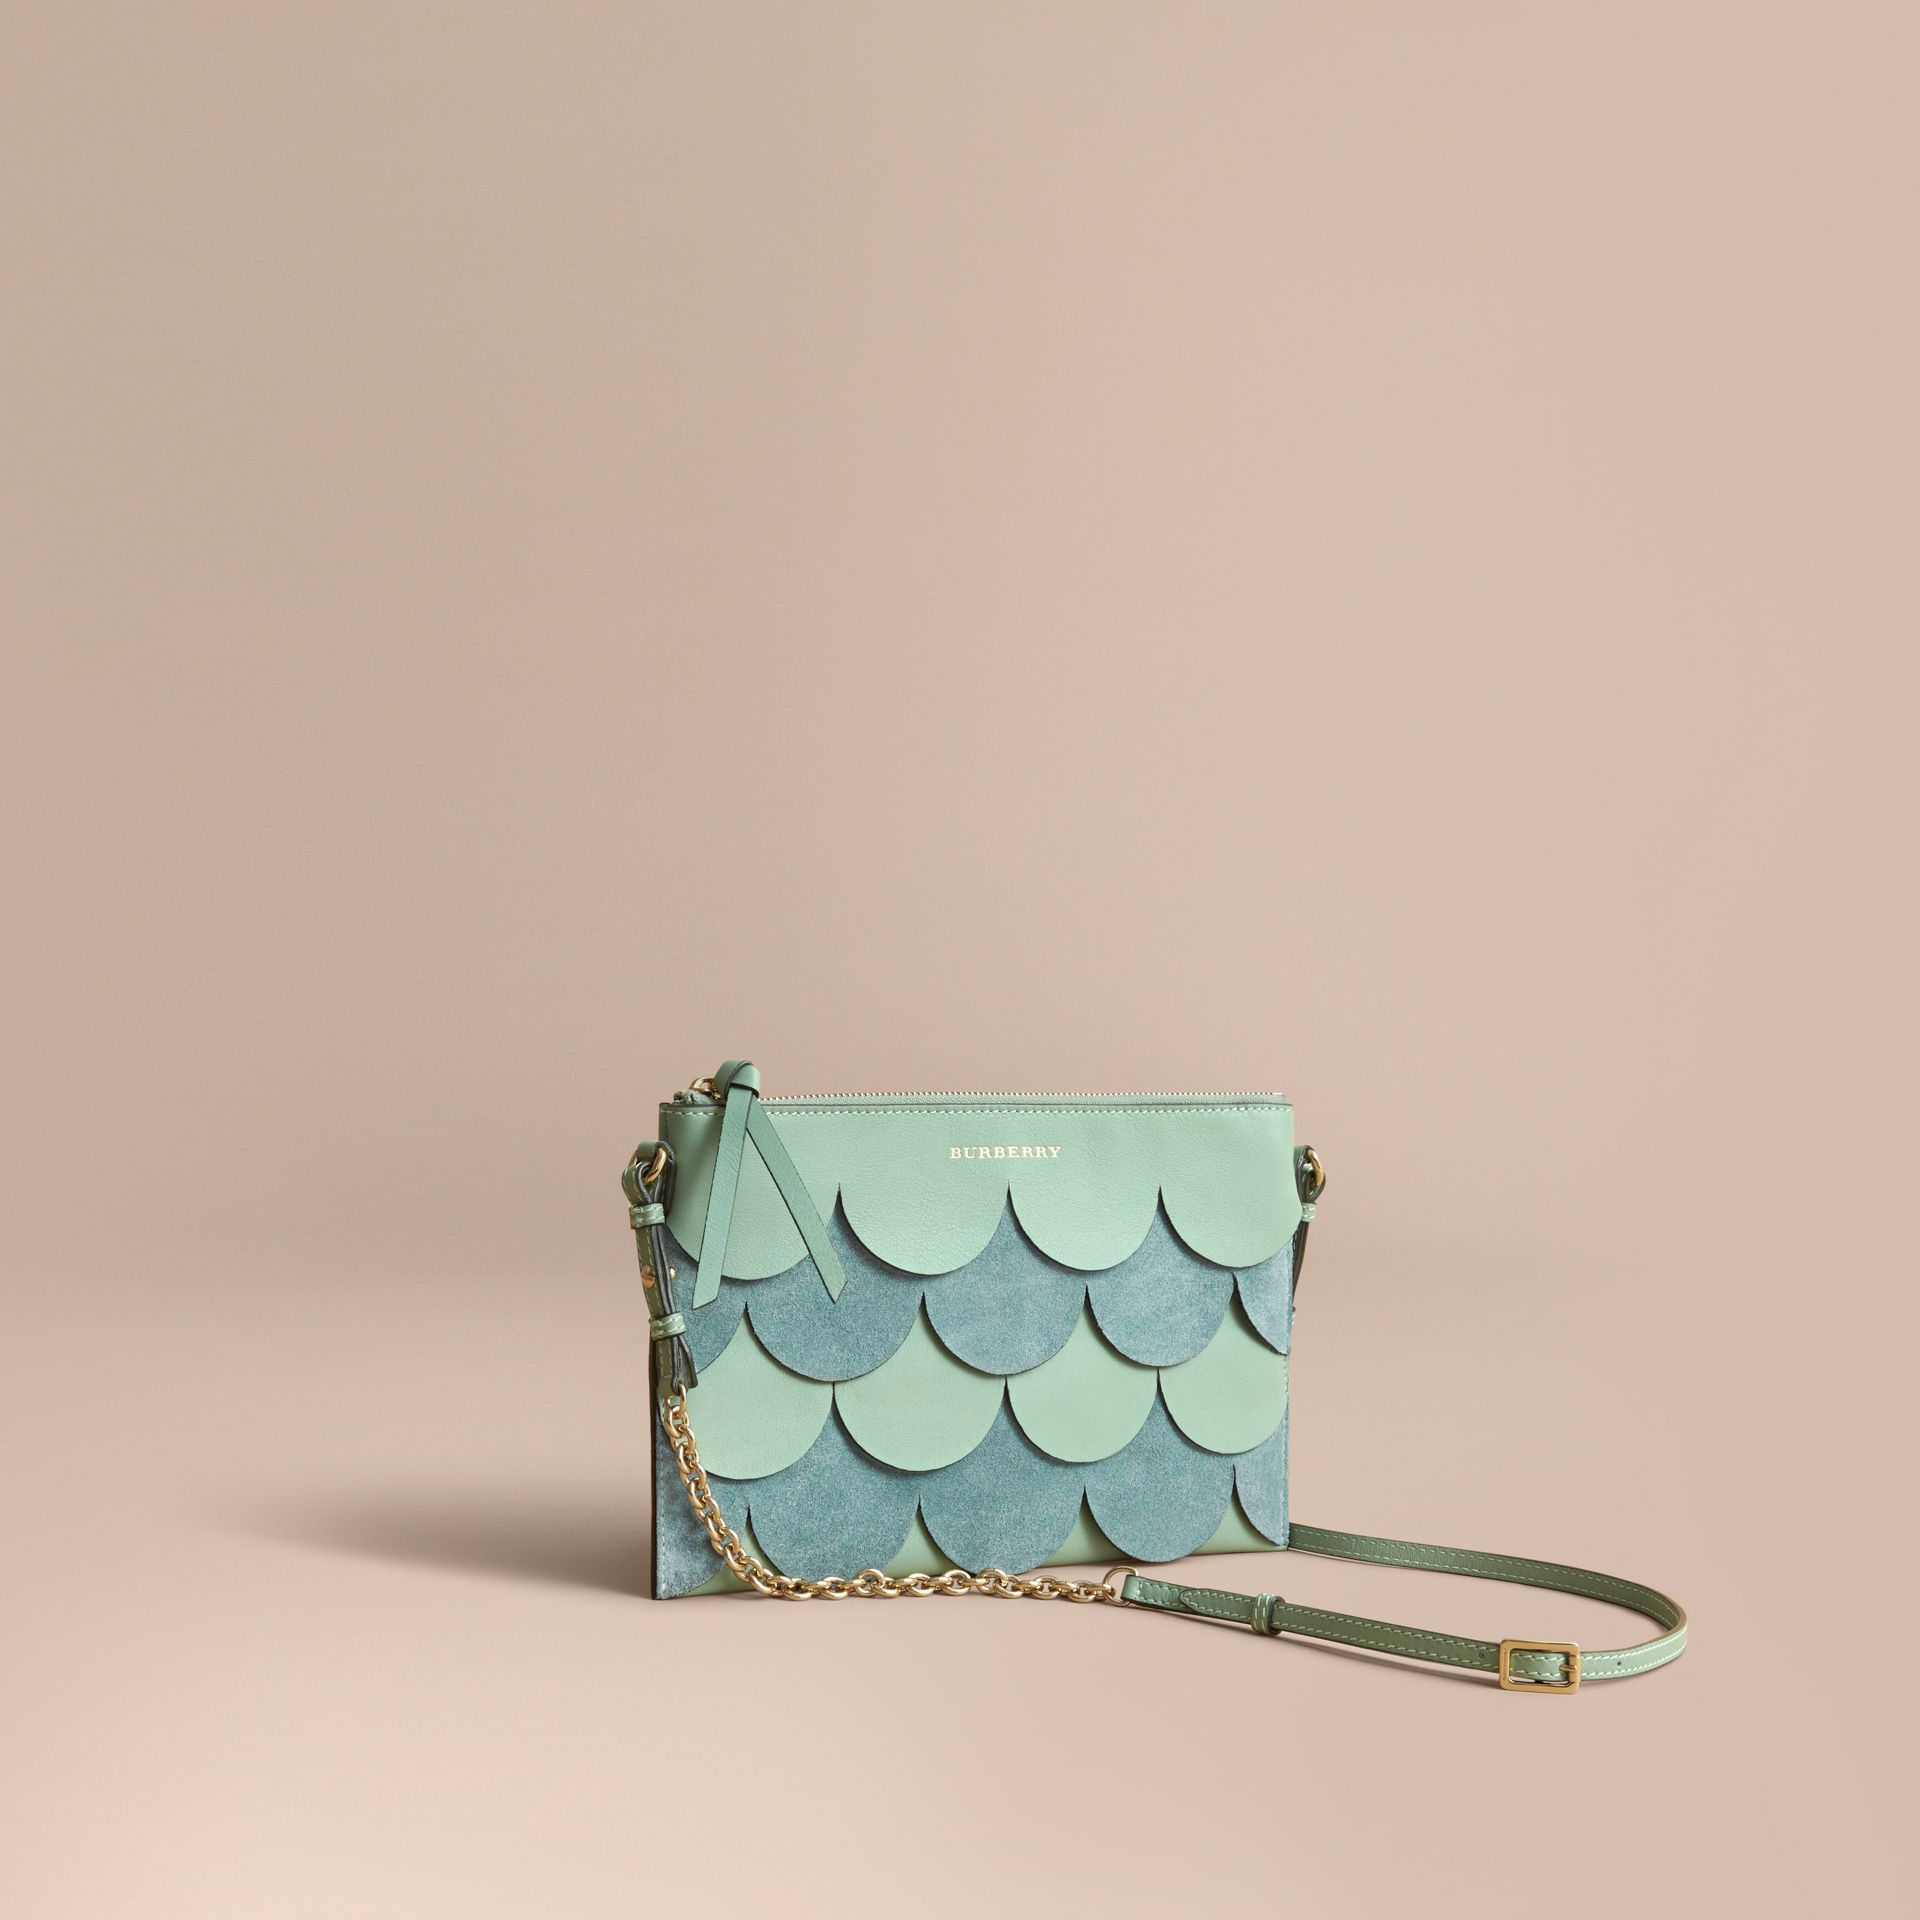 Two-tone Scalloped Leather and Suede Clutch Bag in Celadon Green - Women | Burberry - gallery image 1